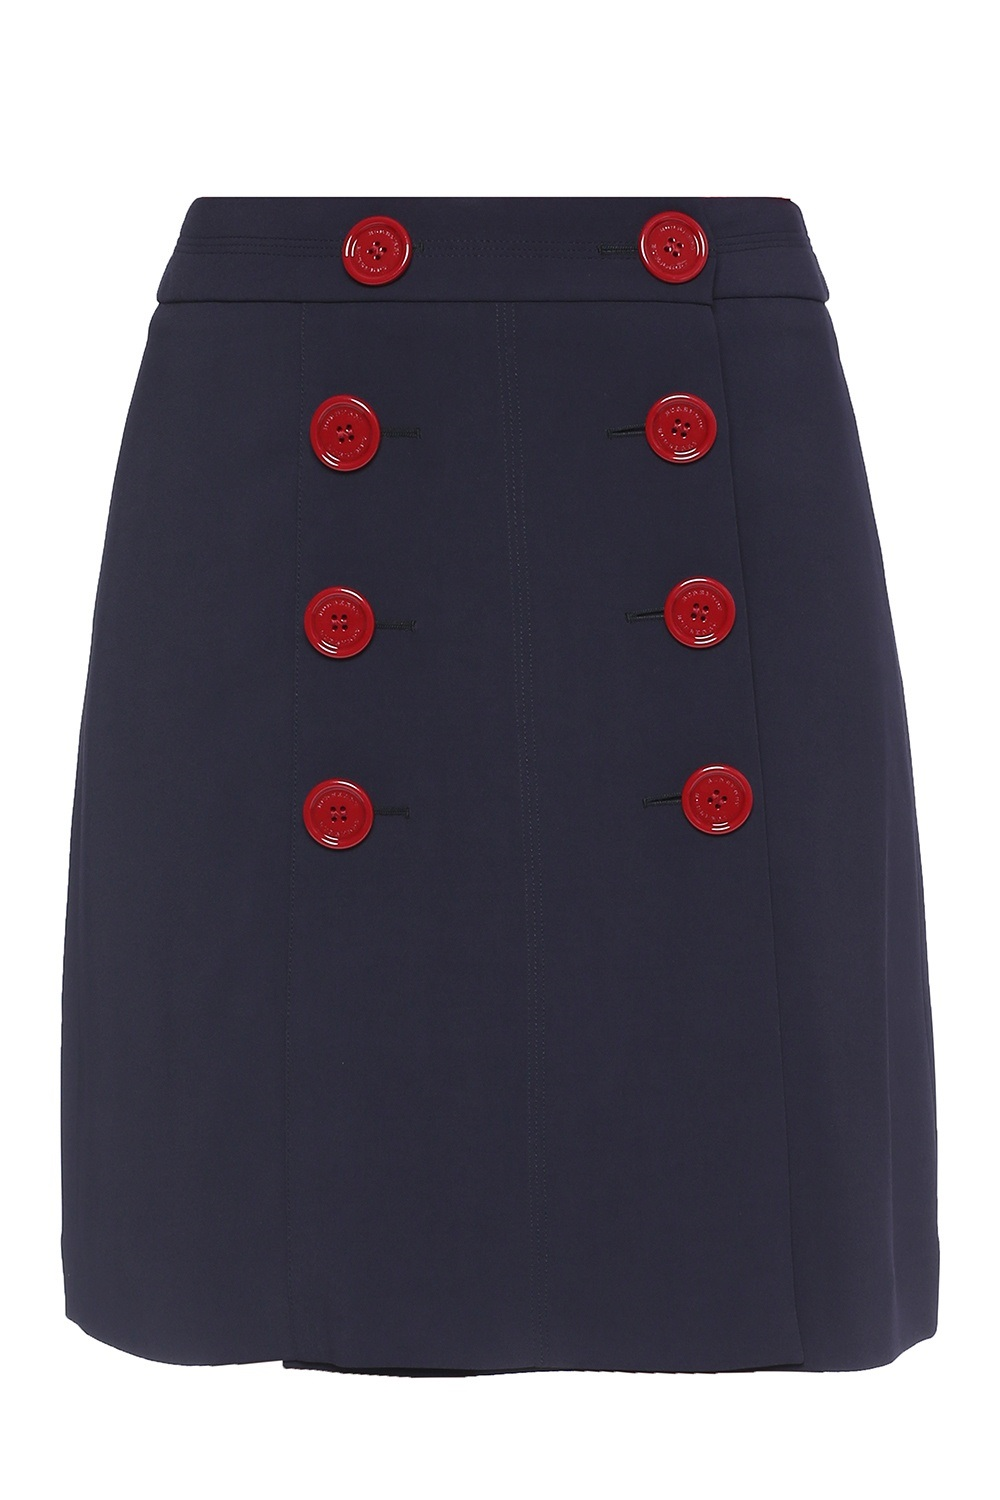 Burberry Trenchbridge Viscose A-line Skirt In Blue,red